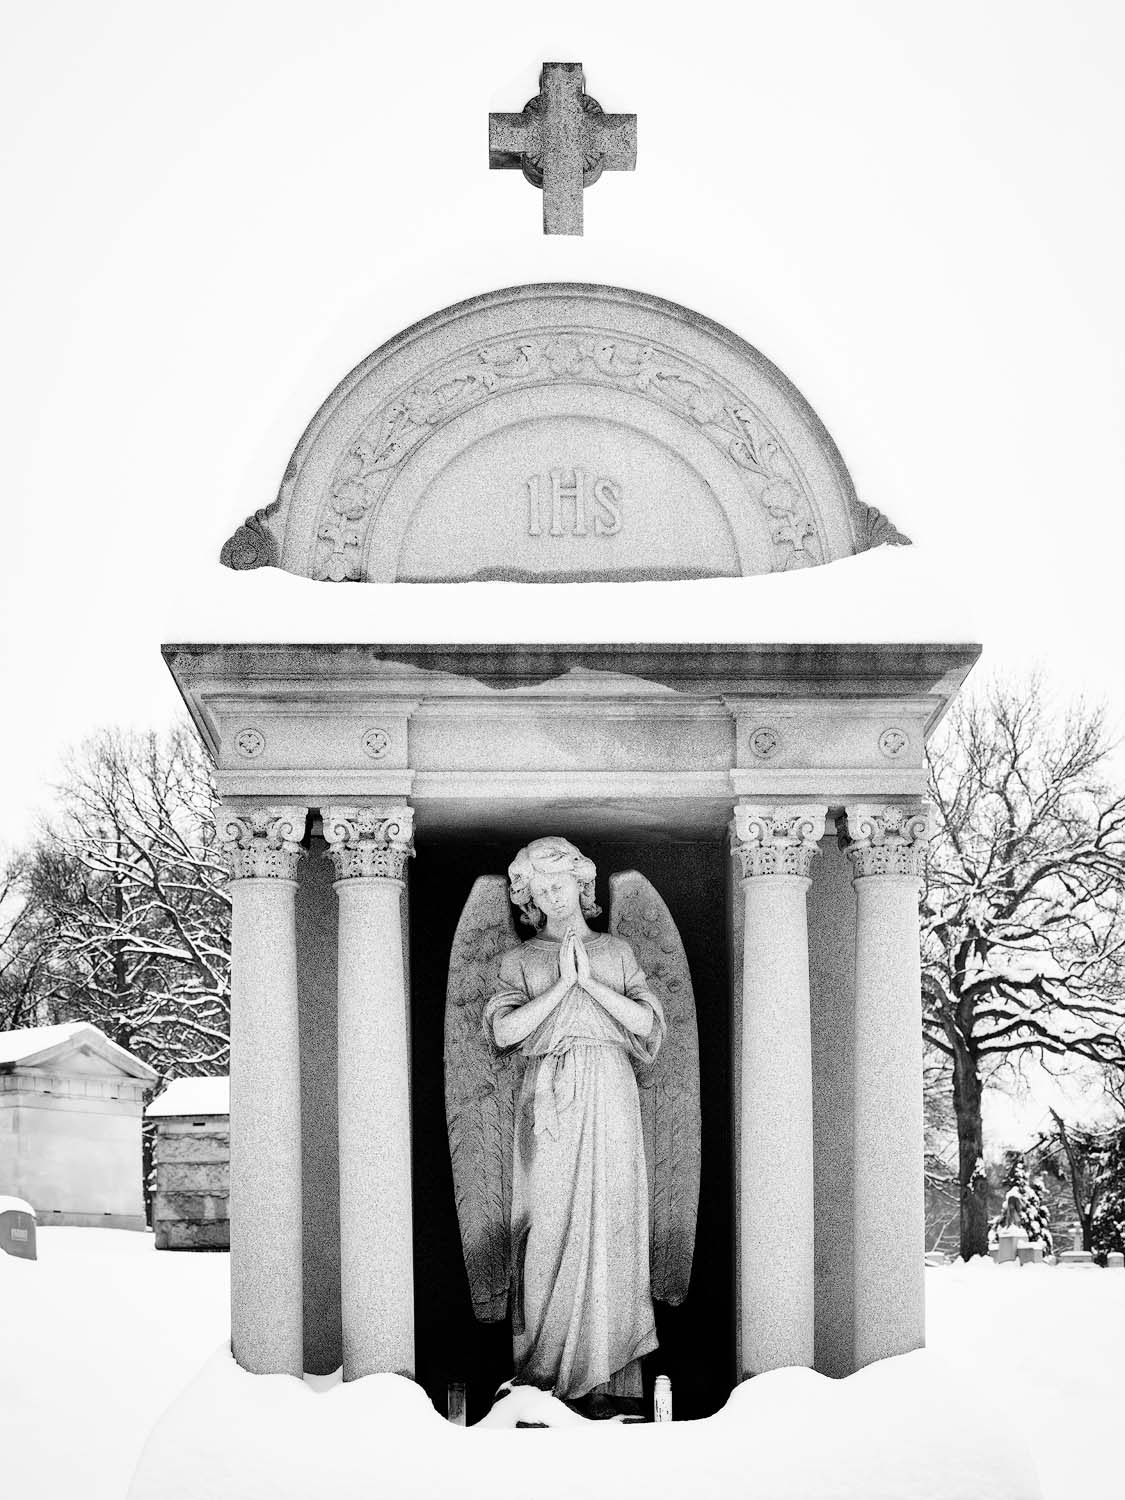 WORLD REGIONS & COUNTRIES, North America, United States of America, Missouri, St. Louis, Calvary Cemetery, architecture, landscape, cemetery, environment, weather, snow, sculpture, death, photo